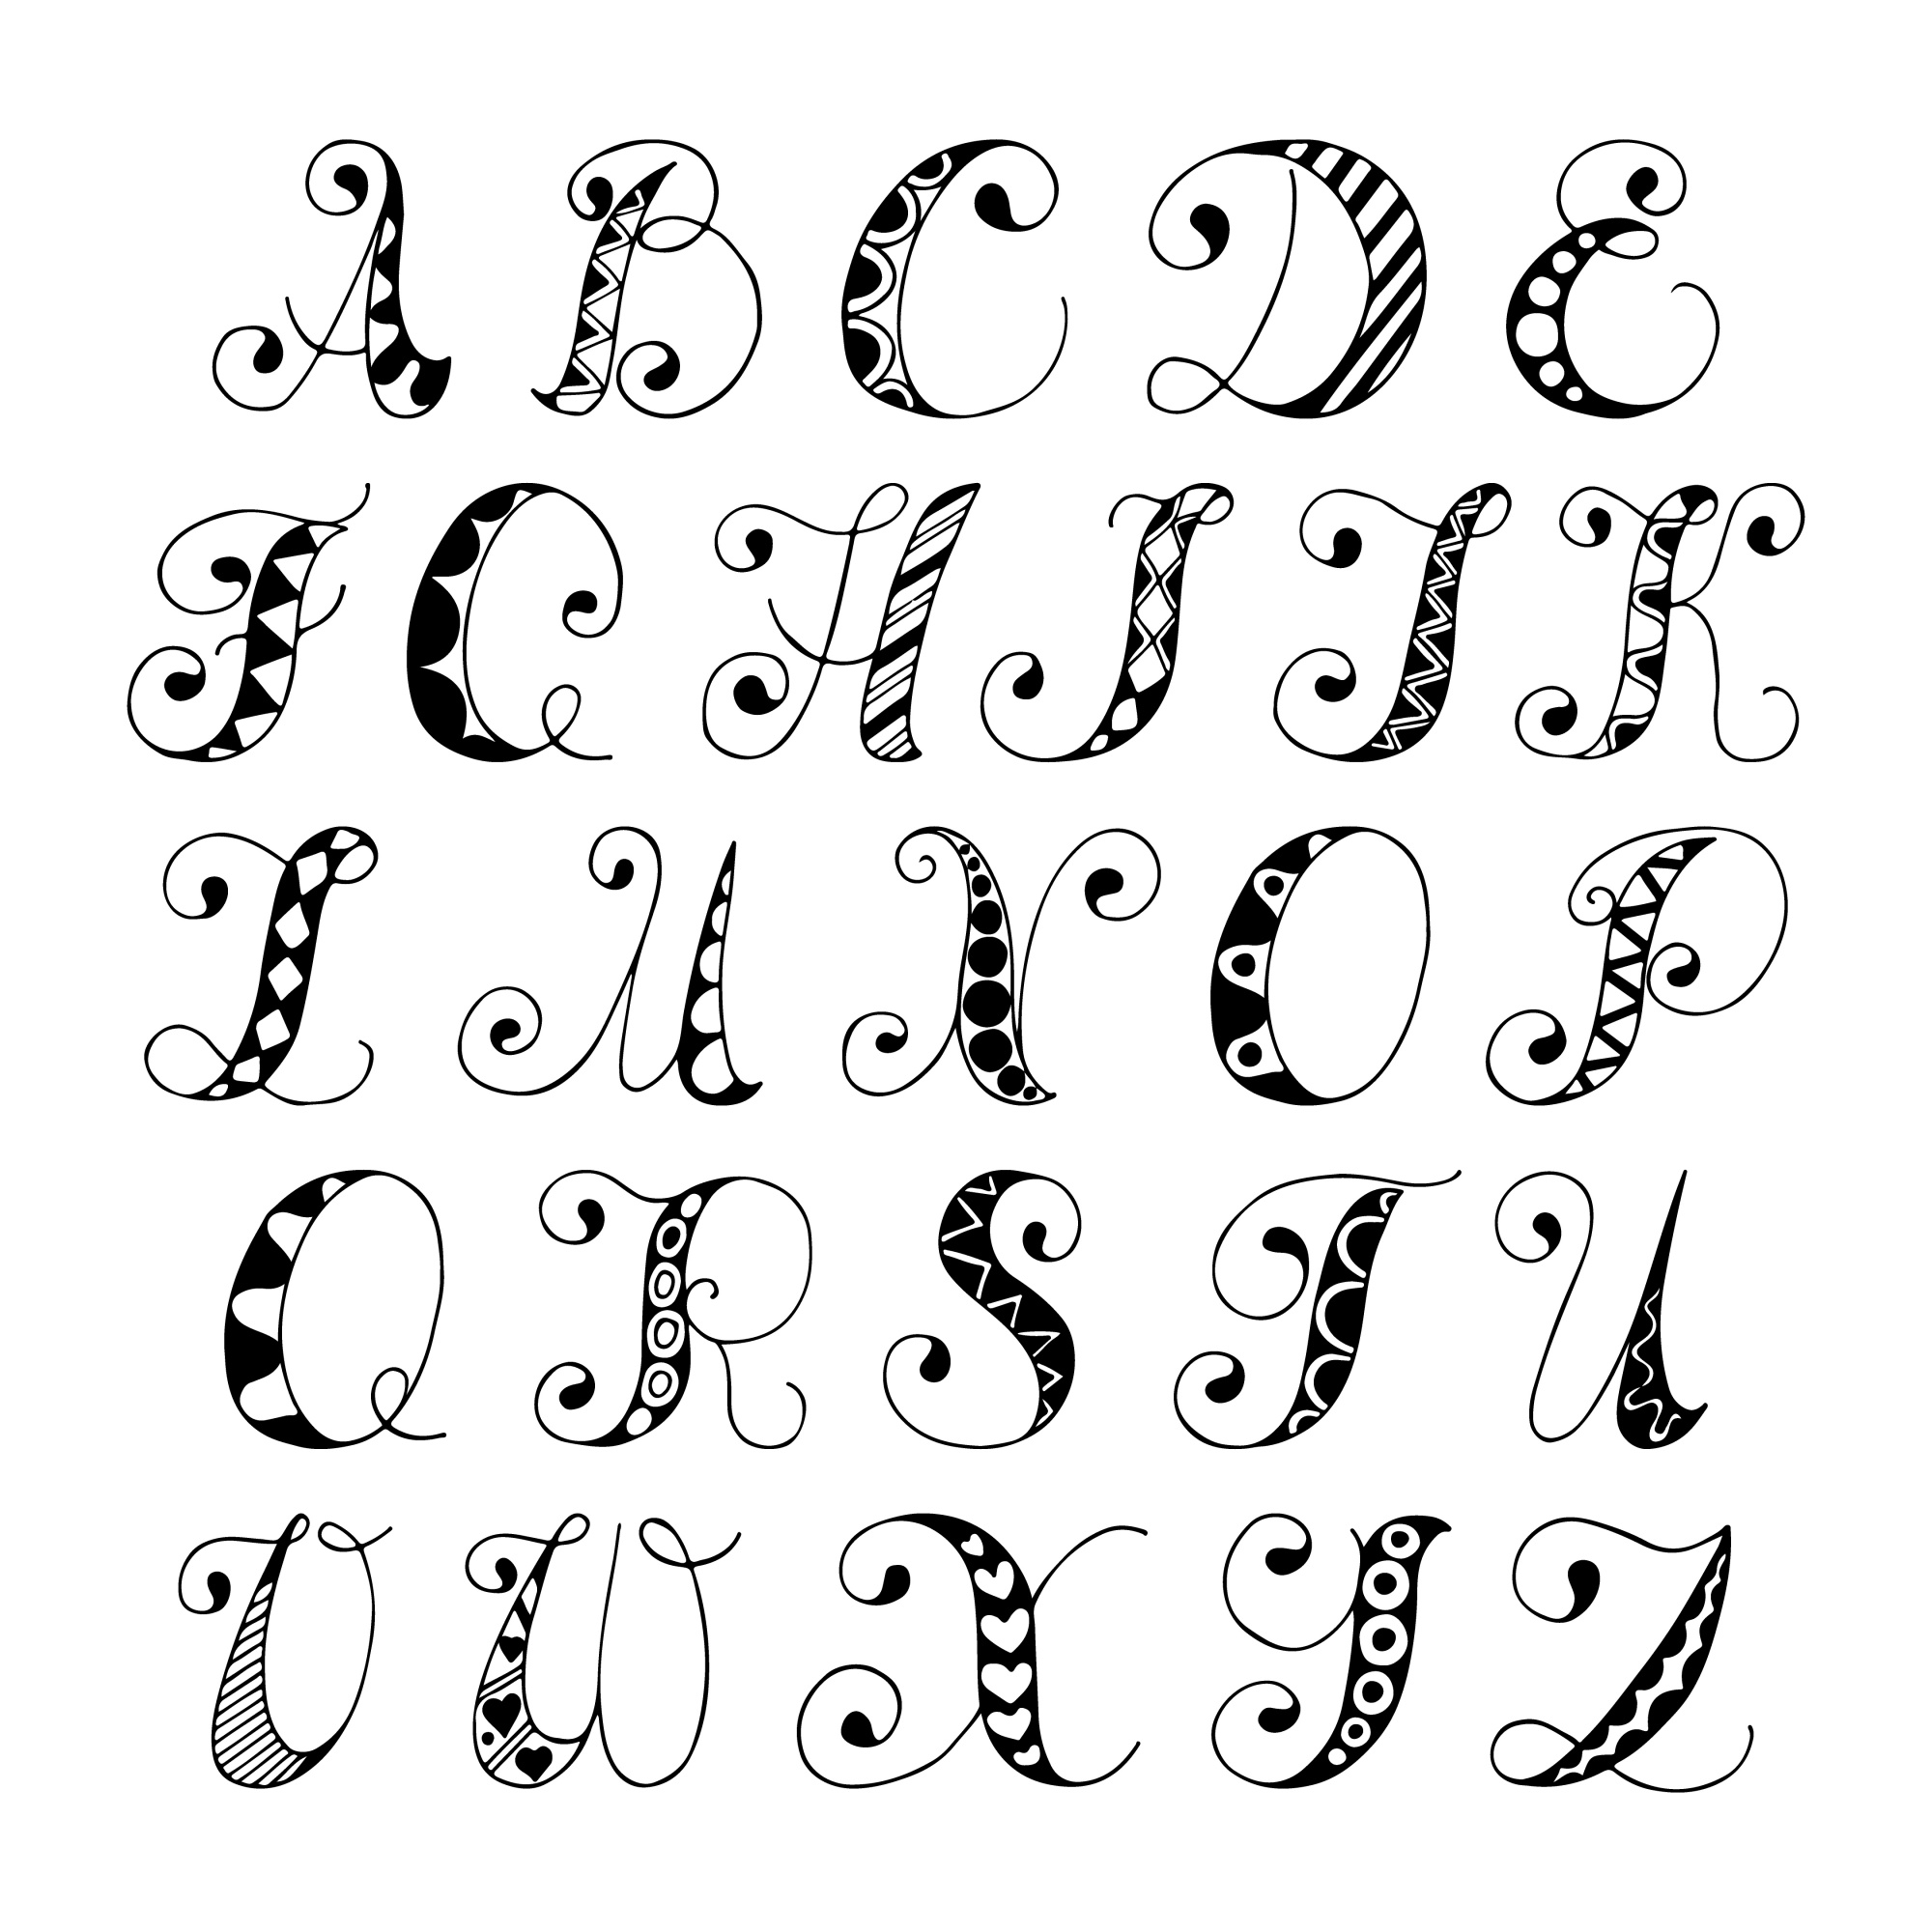 Sketch hand drawn alphabet black and white font letters isolated vector illustration